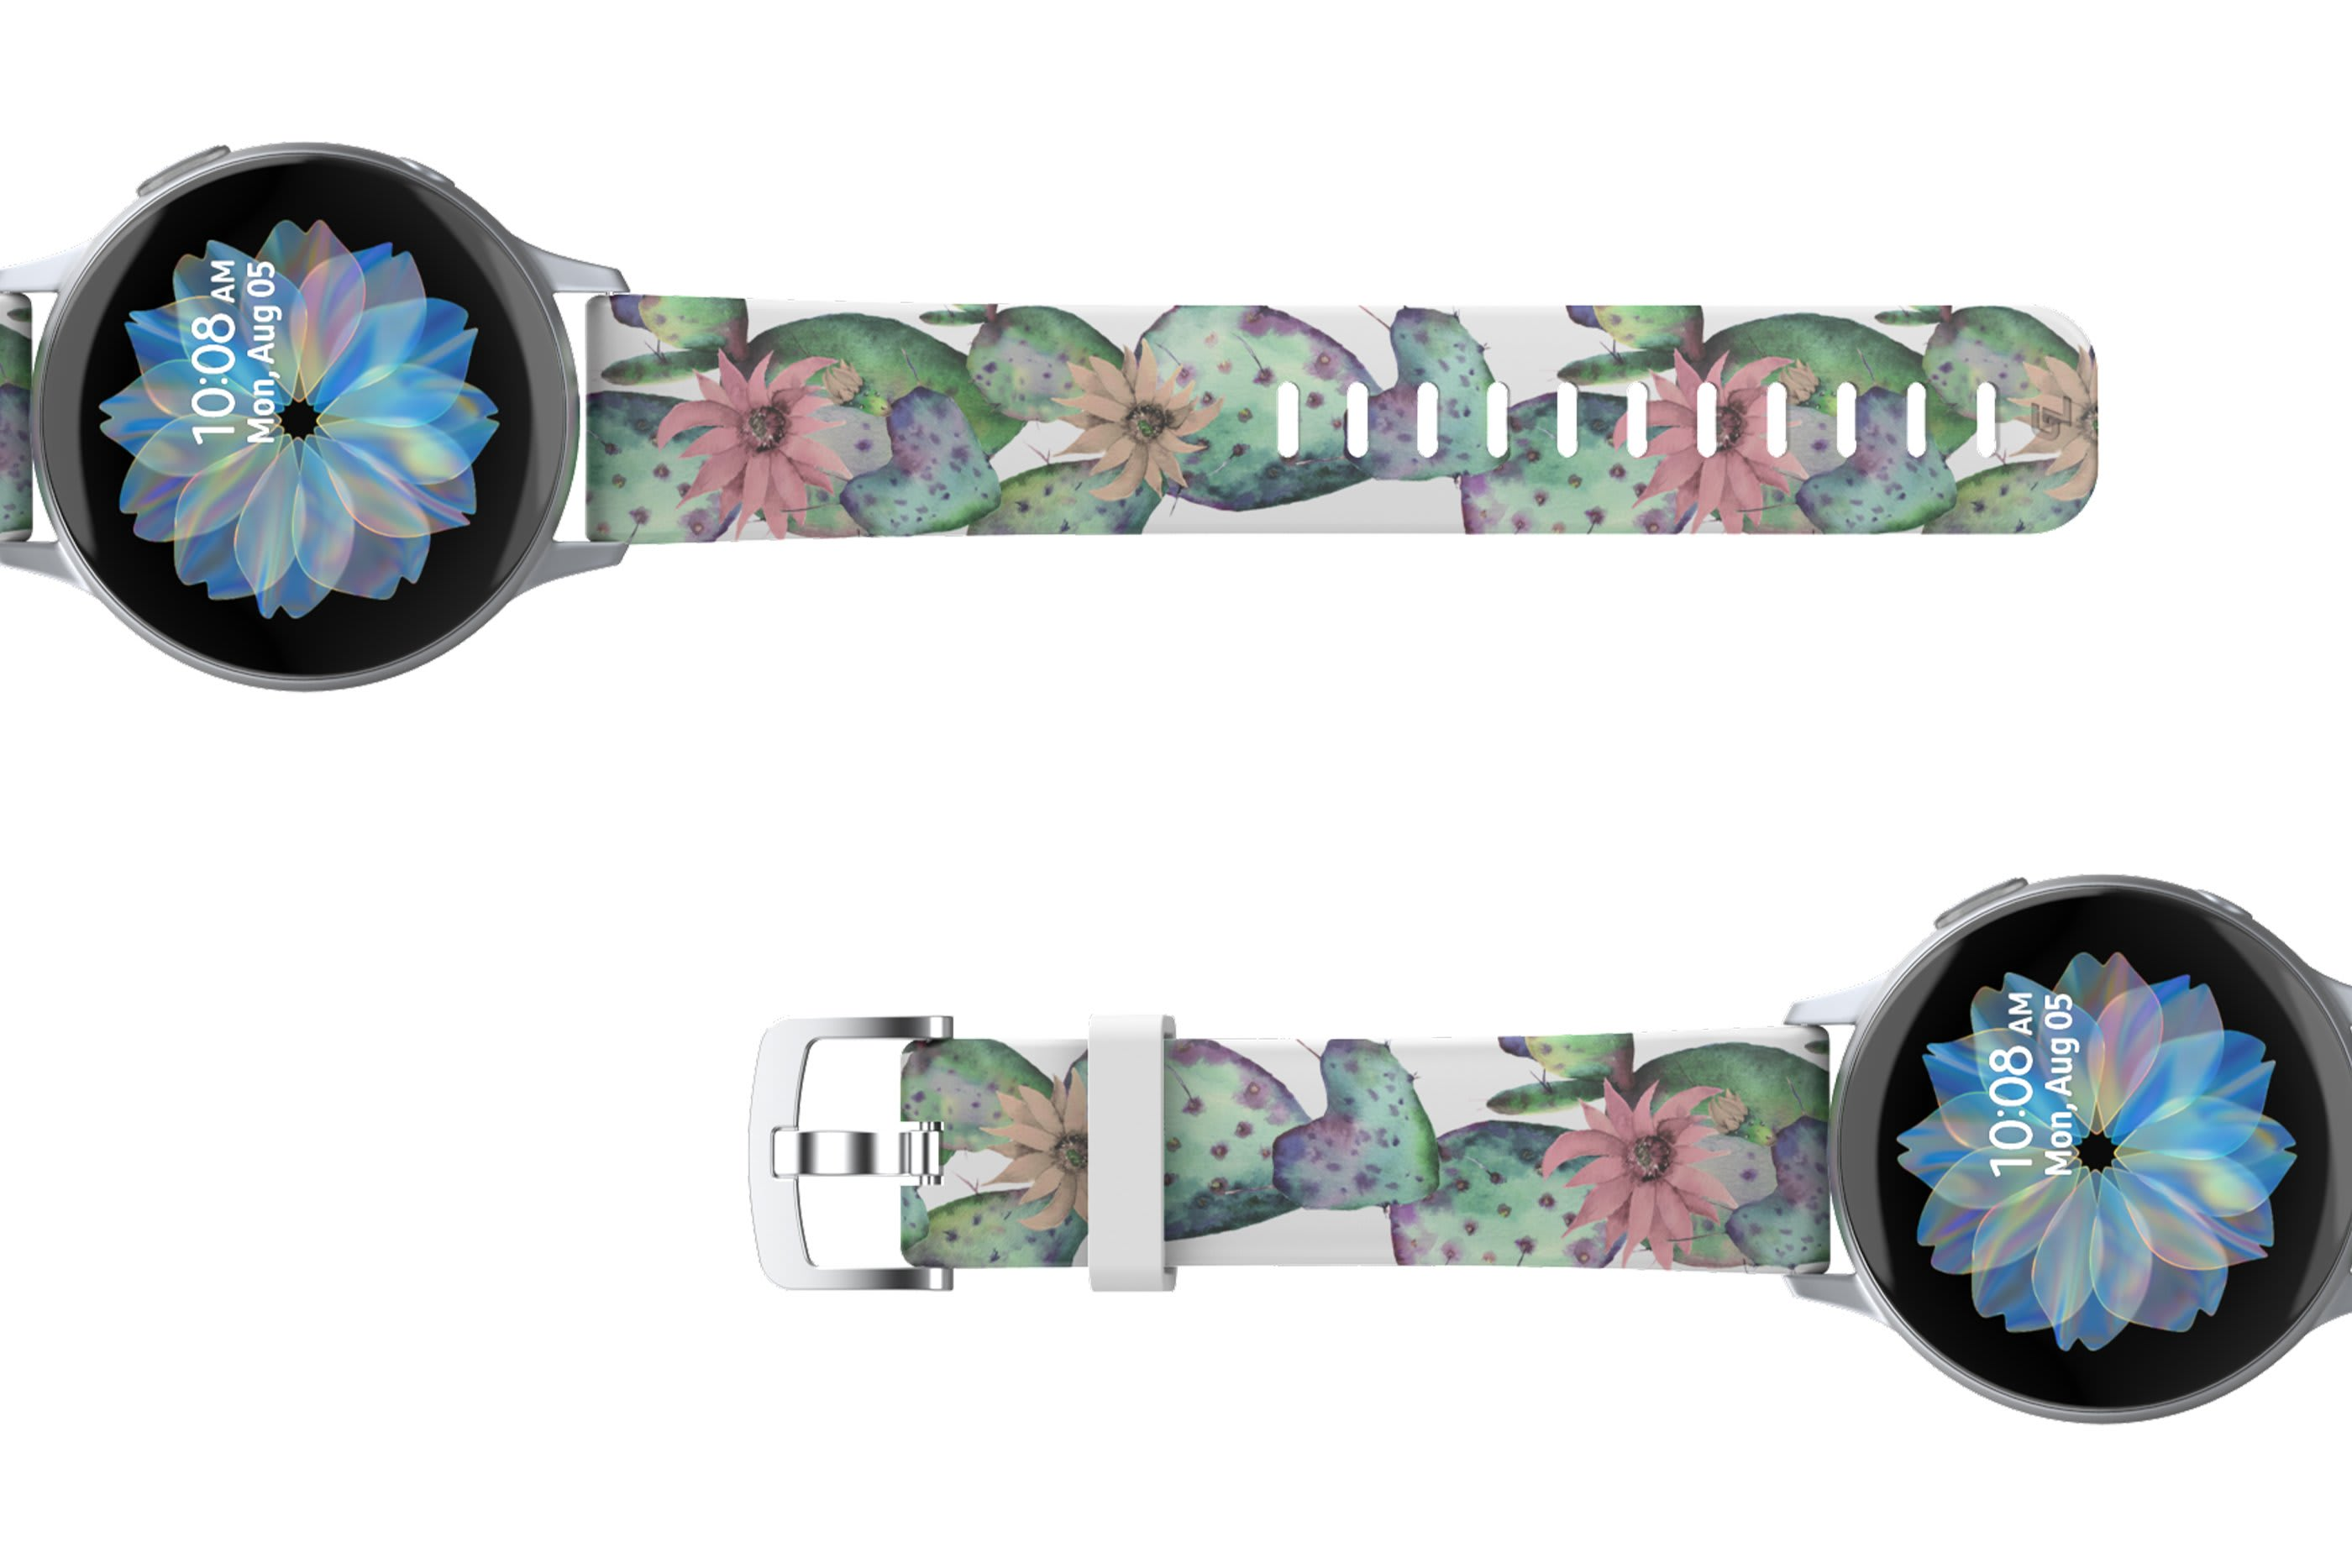 Cactus Bloom Samsung 22mm watch band viewed top down